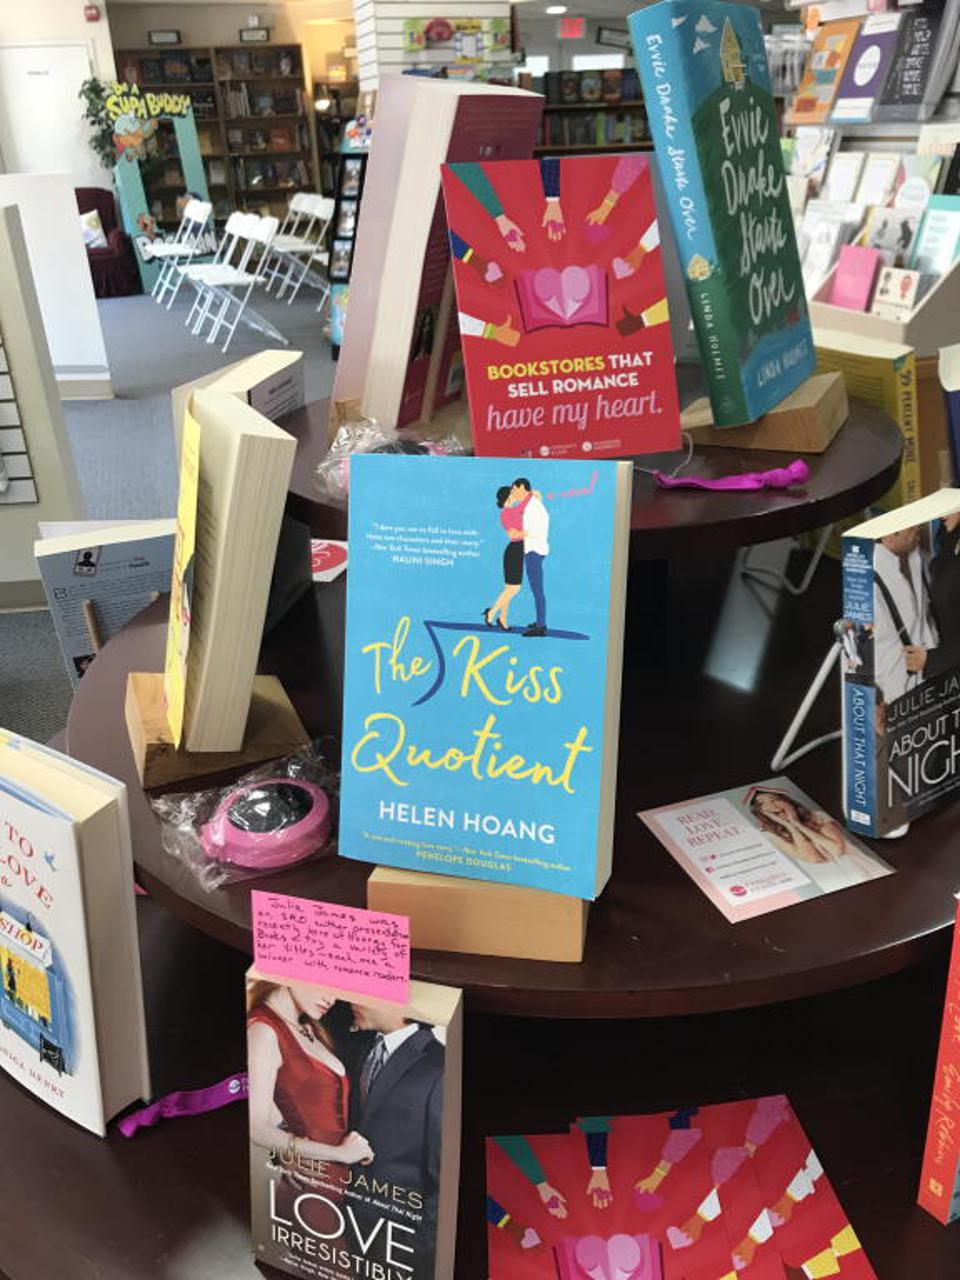 bookstore romance day books the kiss quotient helen hoang hooray for books alexandria virginia